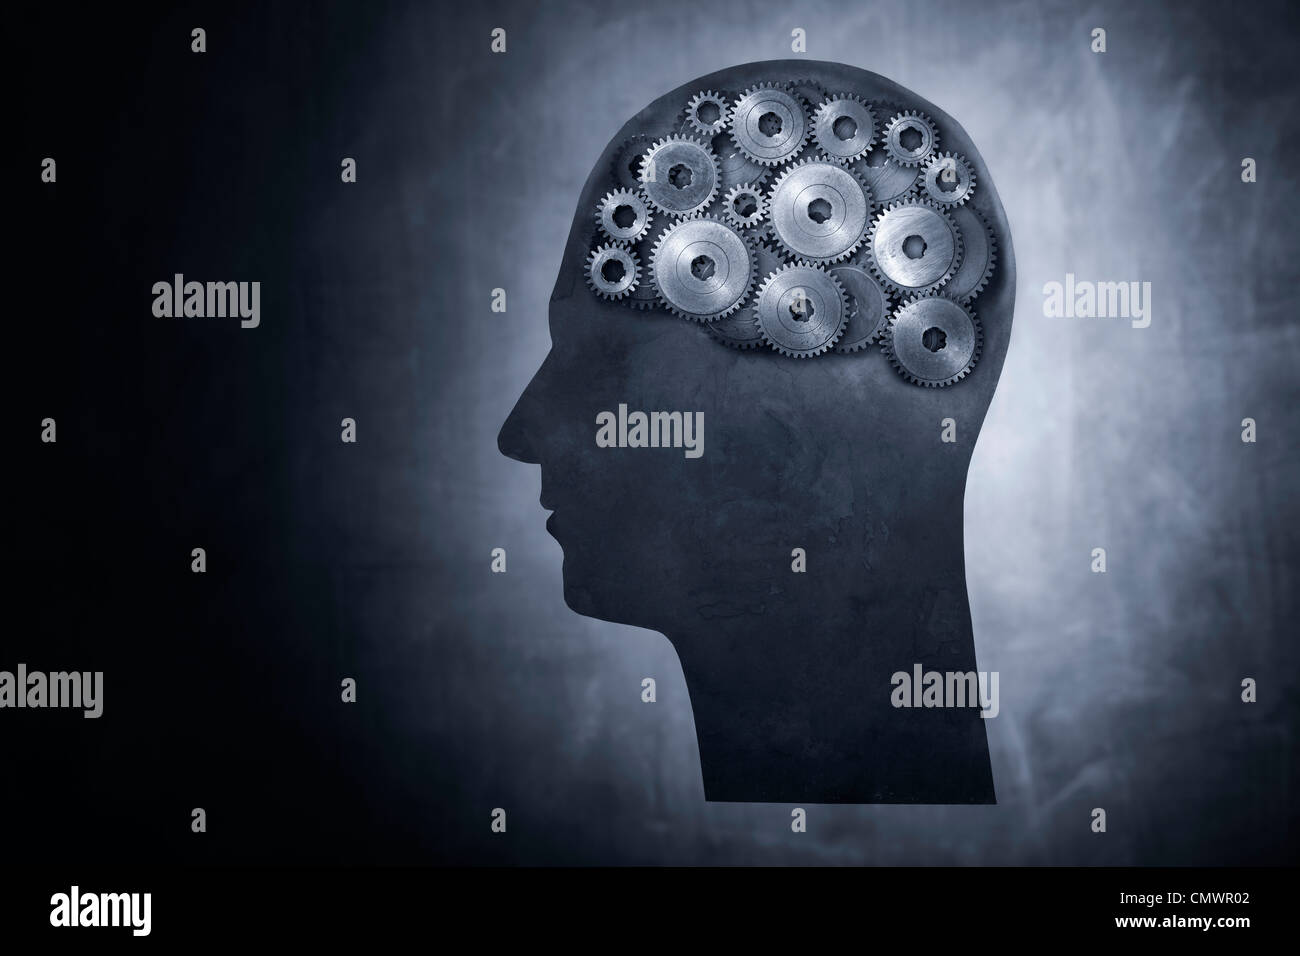 Conceptual image of head filled with cog gears. Stock Photo